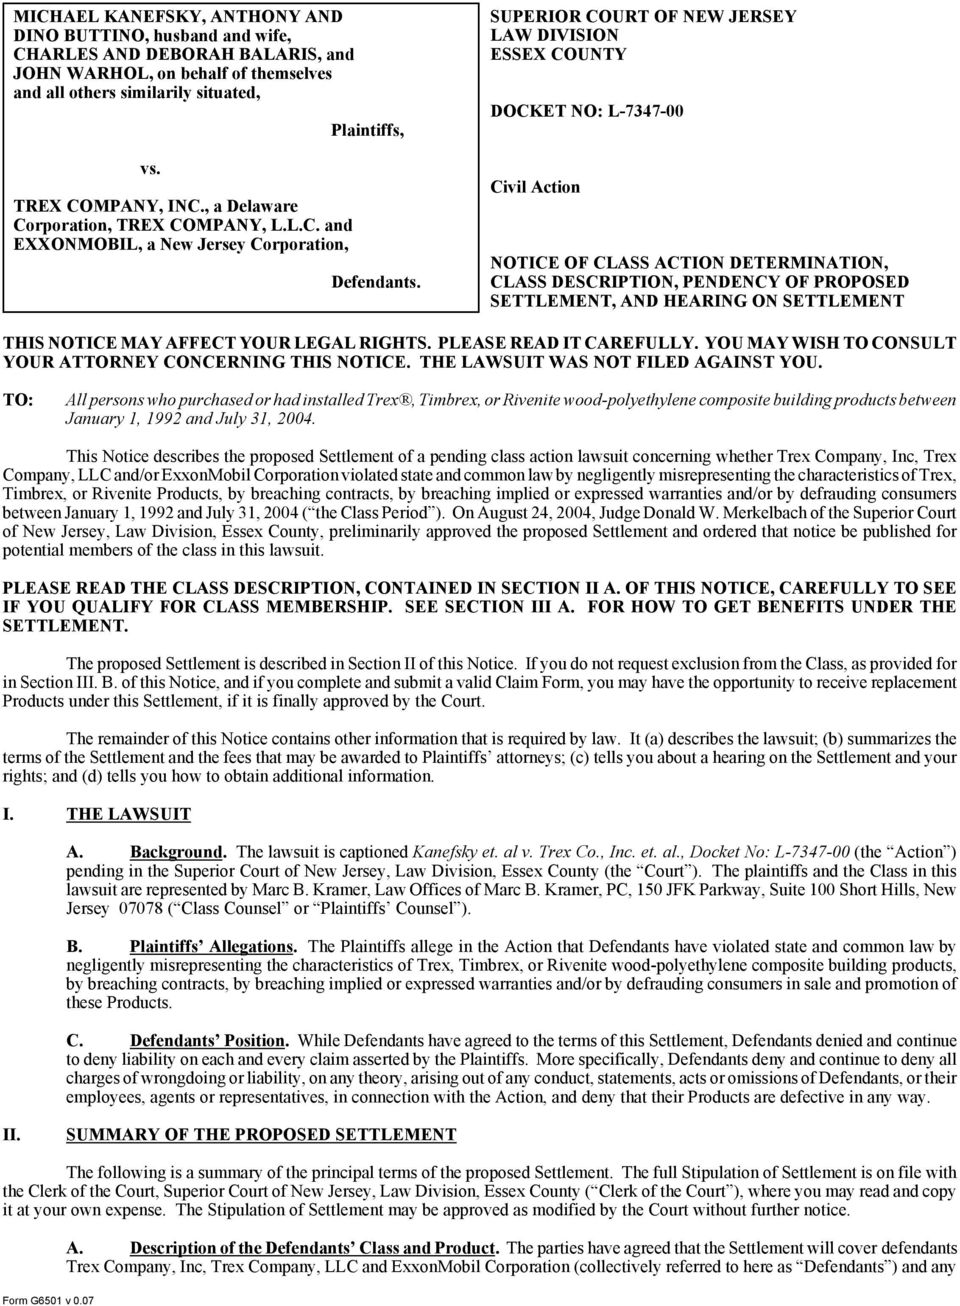 SUPERIOR COURT OF NEW JERSEY LAW DIVISION ESSEX COUNTY DOCKET NO: L-7347-00 Civil Action NOTICE OF CLASS ACTION DETERMINATION, CLASS DESCRIPTION, PENDENCY OF PROPOSED SETTLEMENT, AND HEARING ON